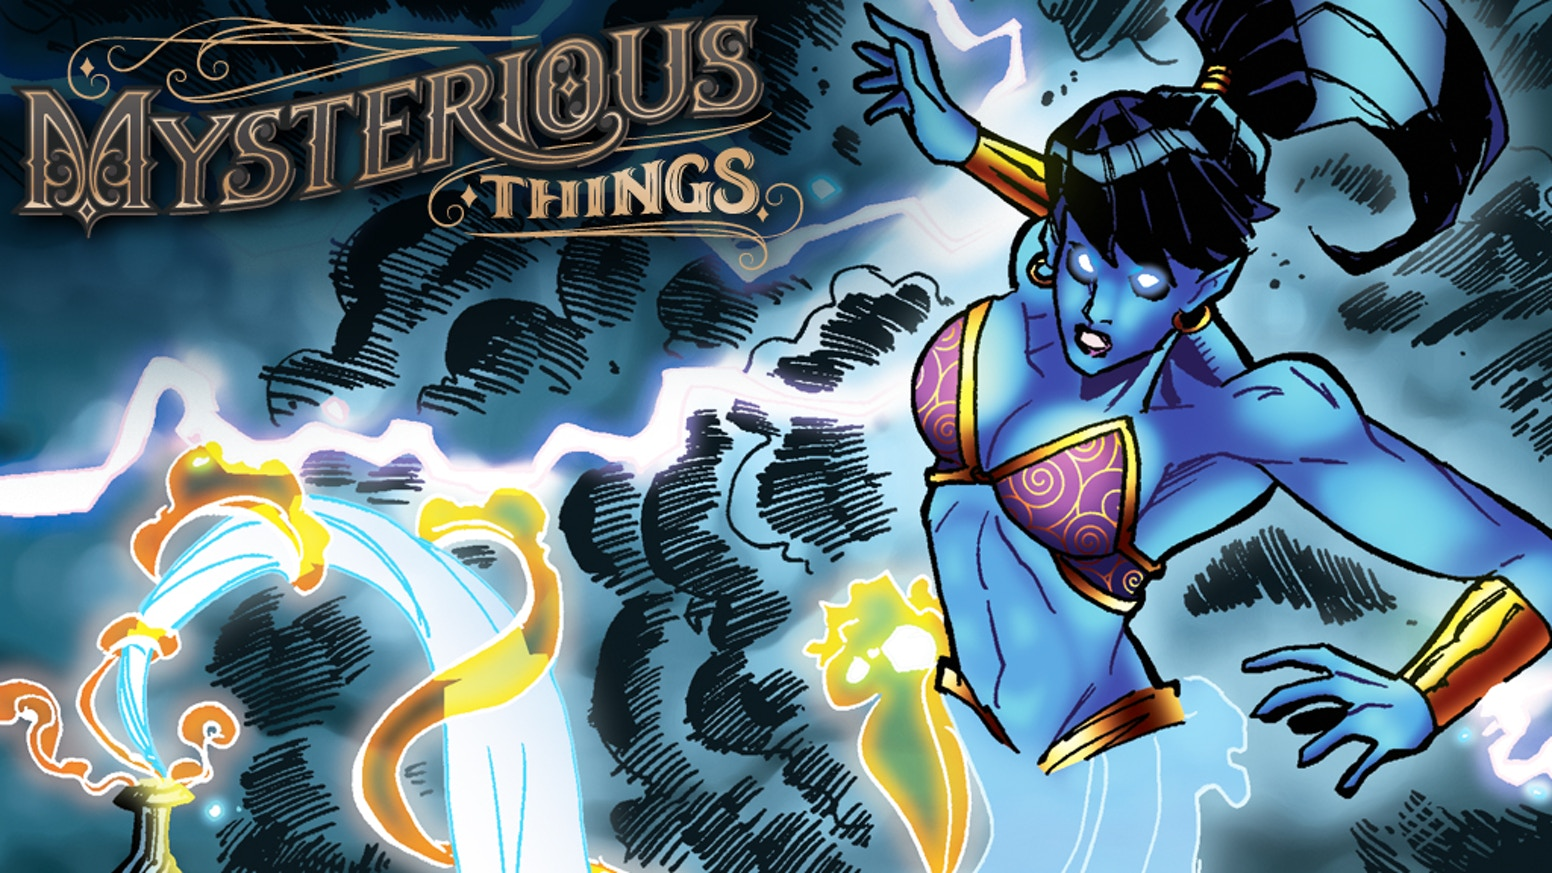 An ancient genie is accidentally released into the modern world. She must overcome defeat, and reclaim her destiny.